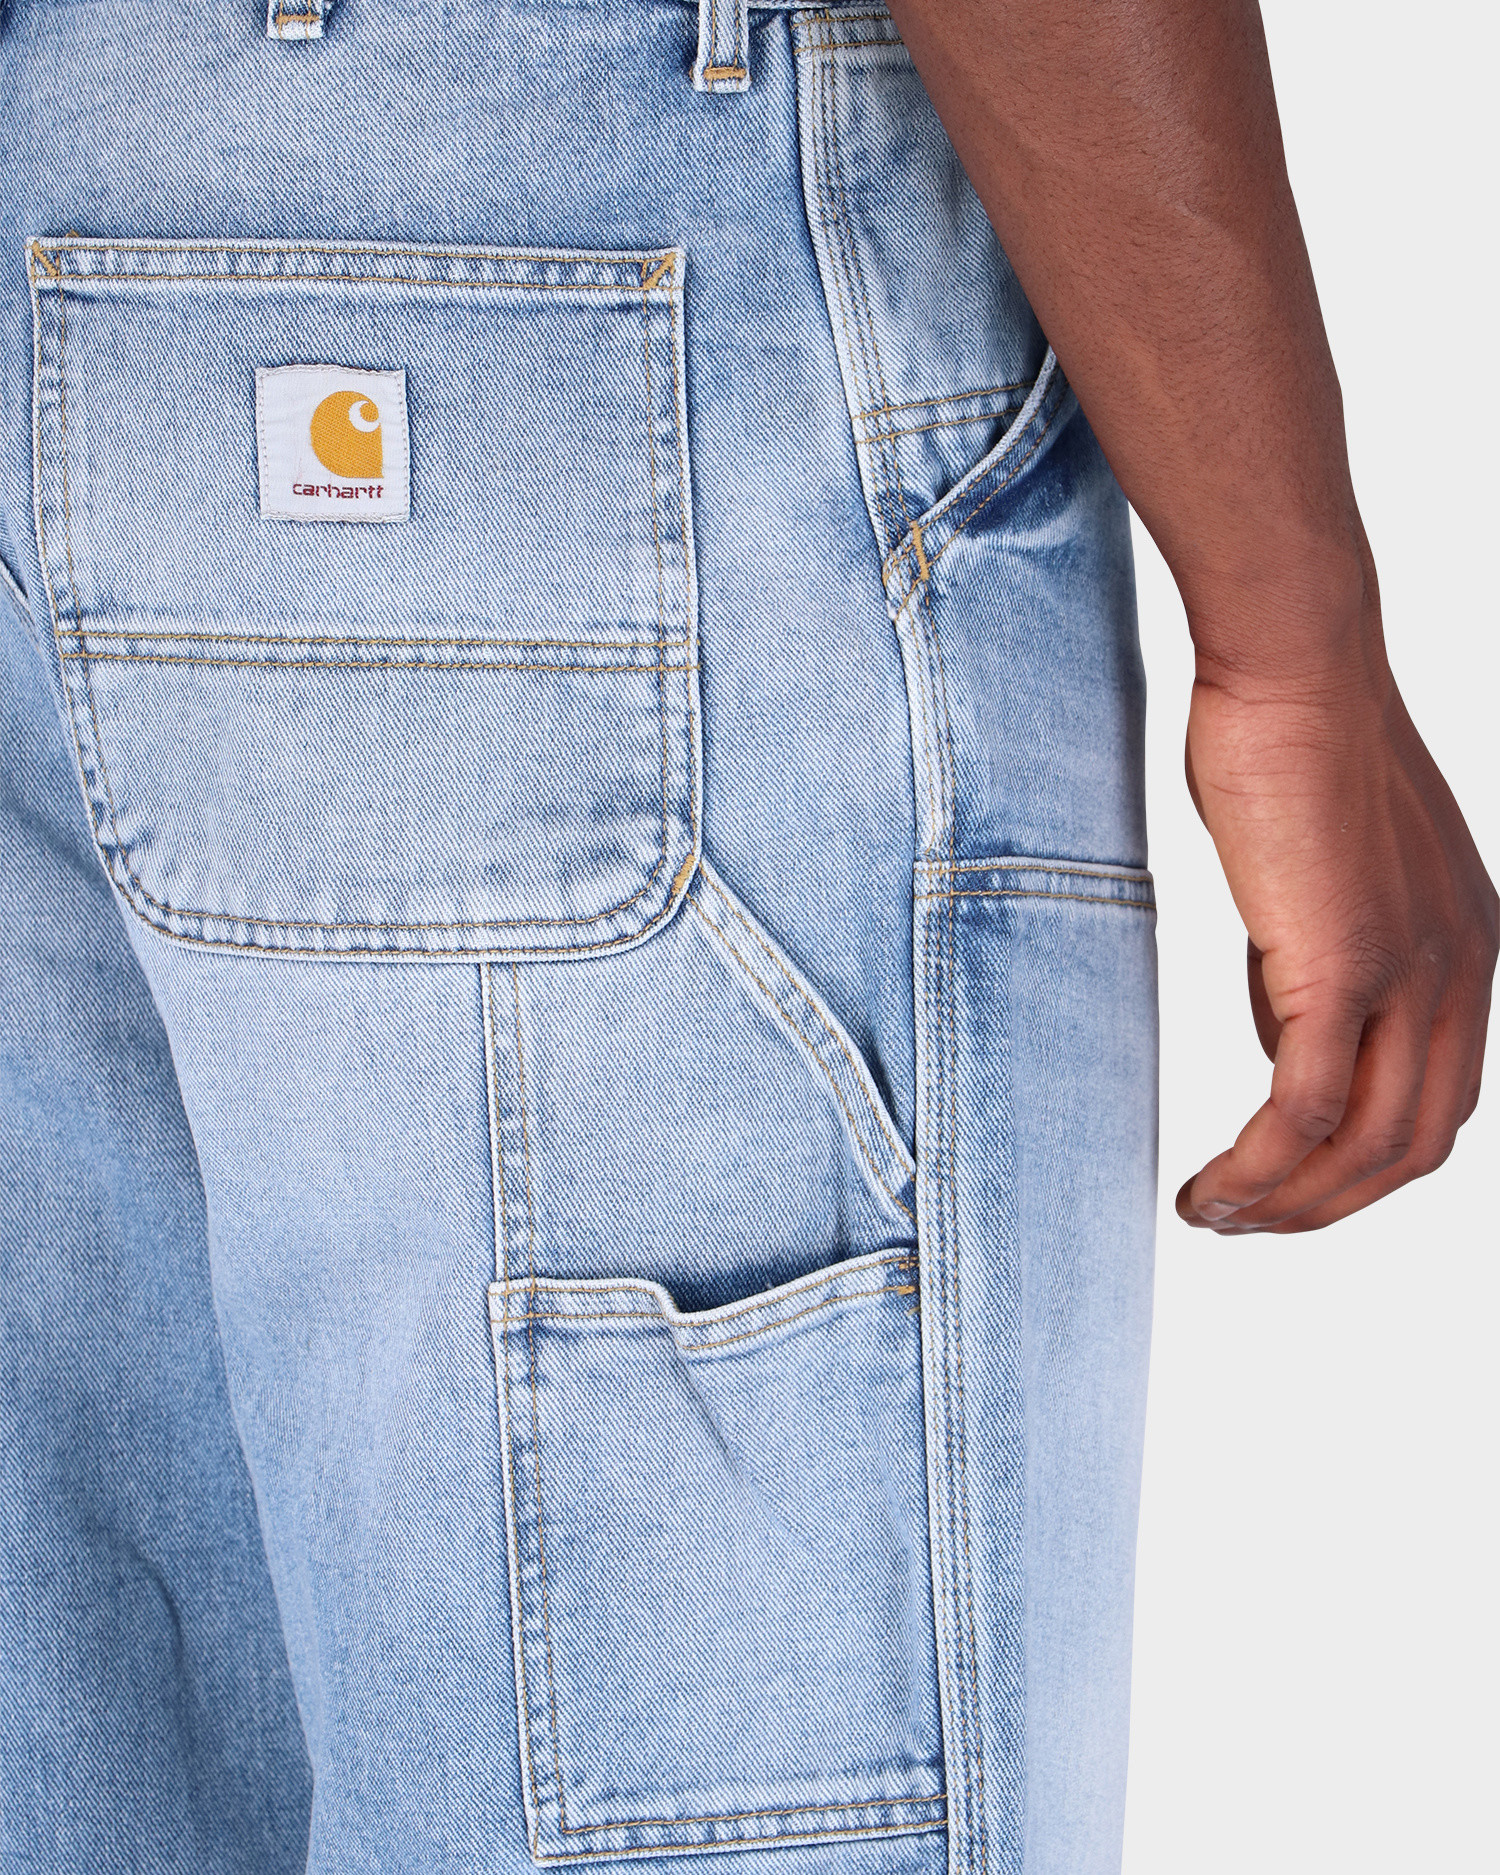 Carhartt Double Knee Pant 100% Organic Cotton Dusty Blue Light used wash